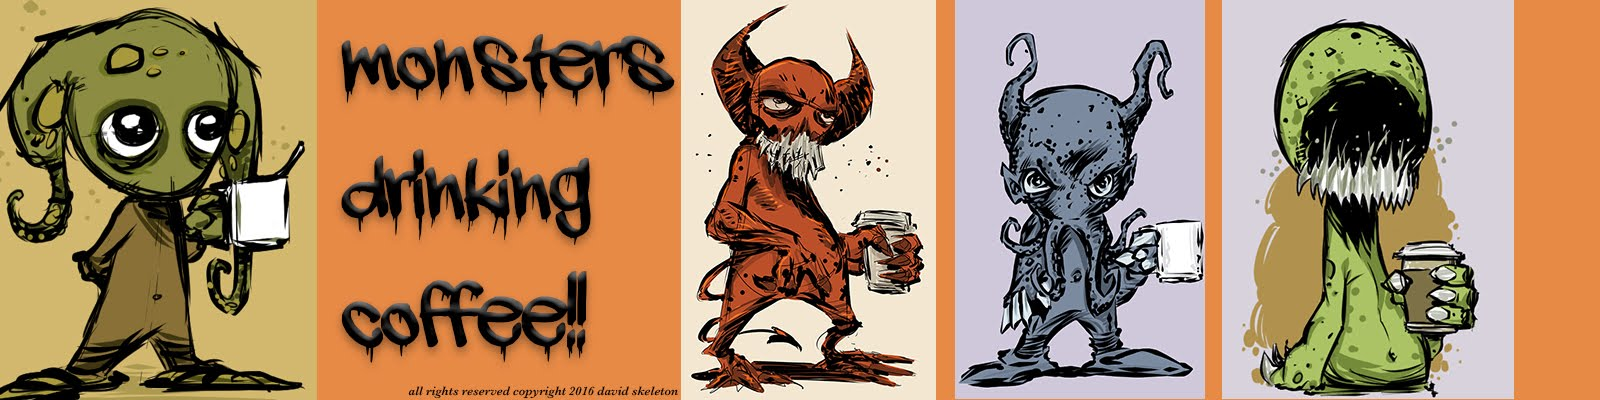 Monsters Drinking Coffee